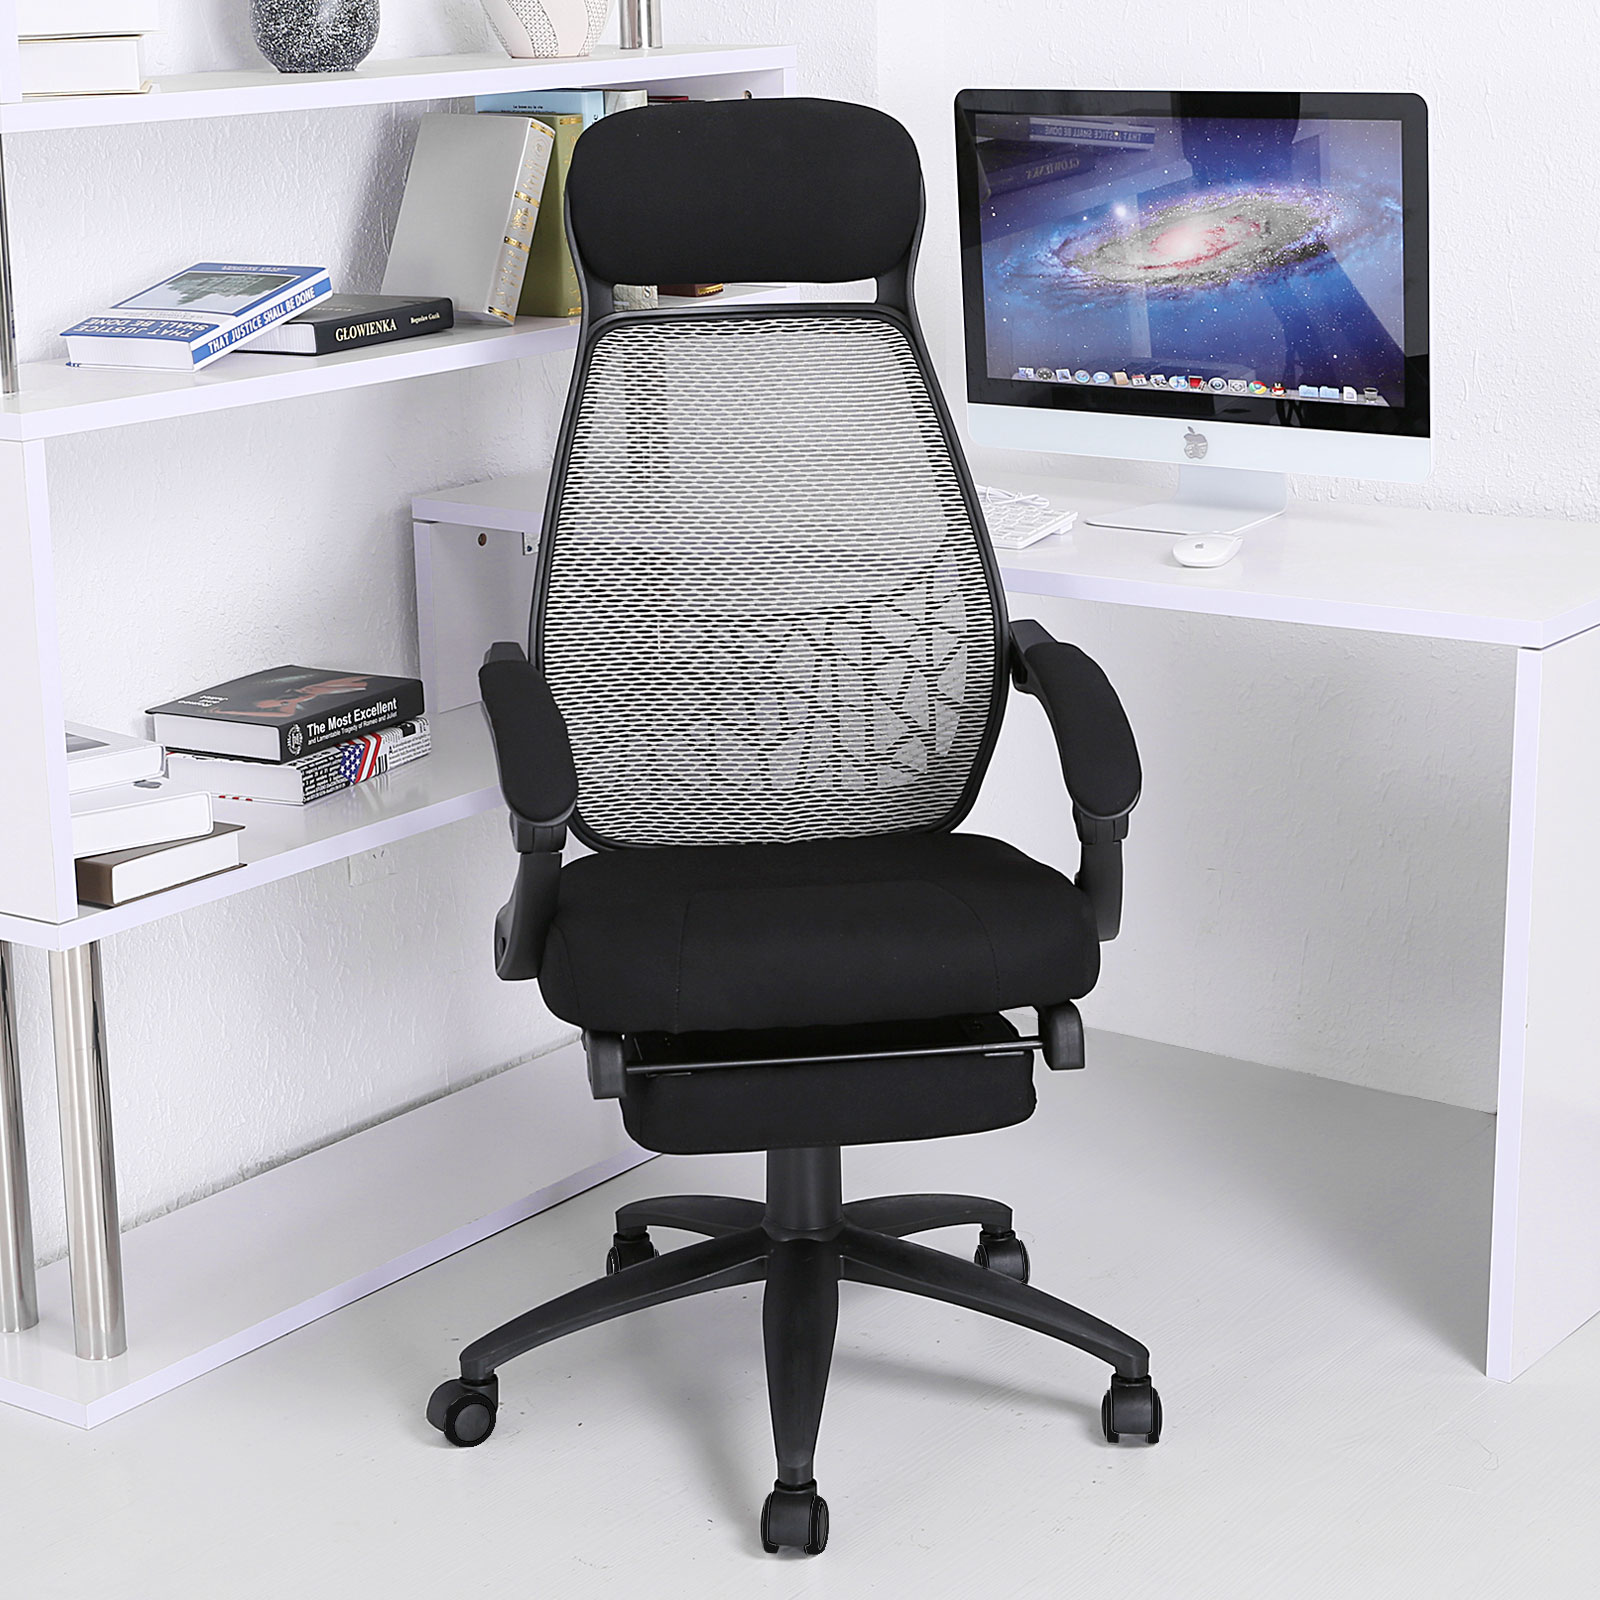 reclining office chair with footrest india black spindle kitchen chairs executive fabric relax mesh high